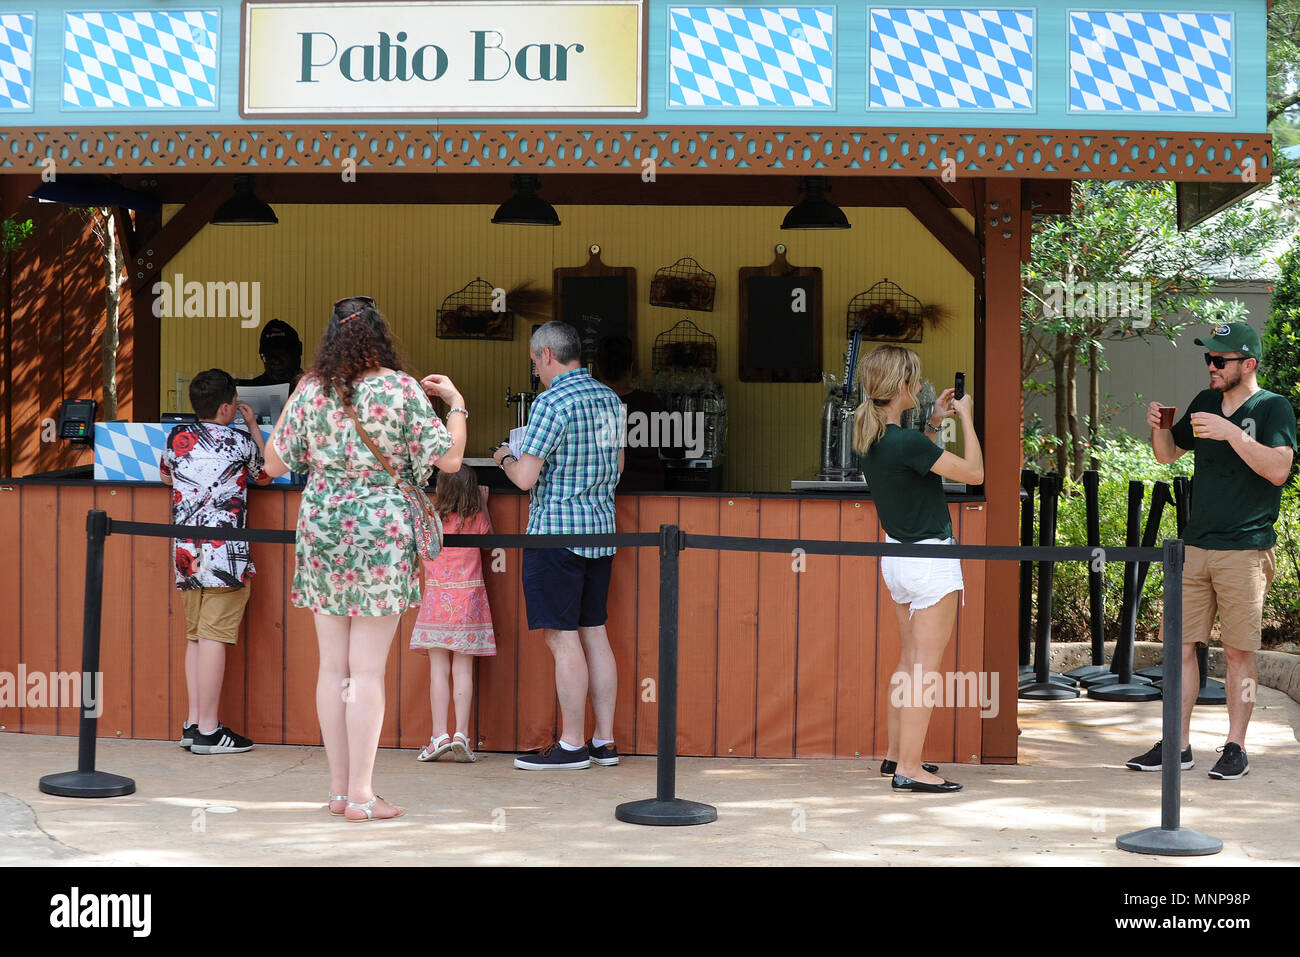 Orlando, Florida, USA. 18th May, 2018. People wait to be served ...